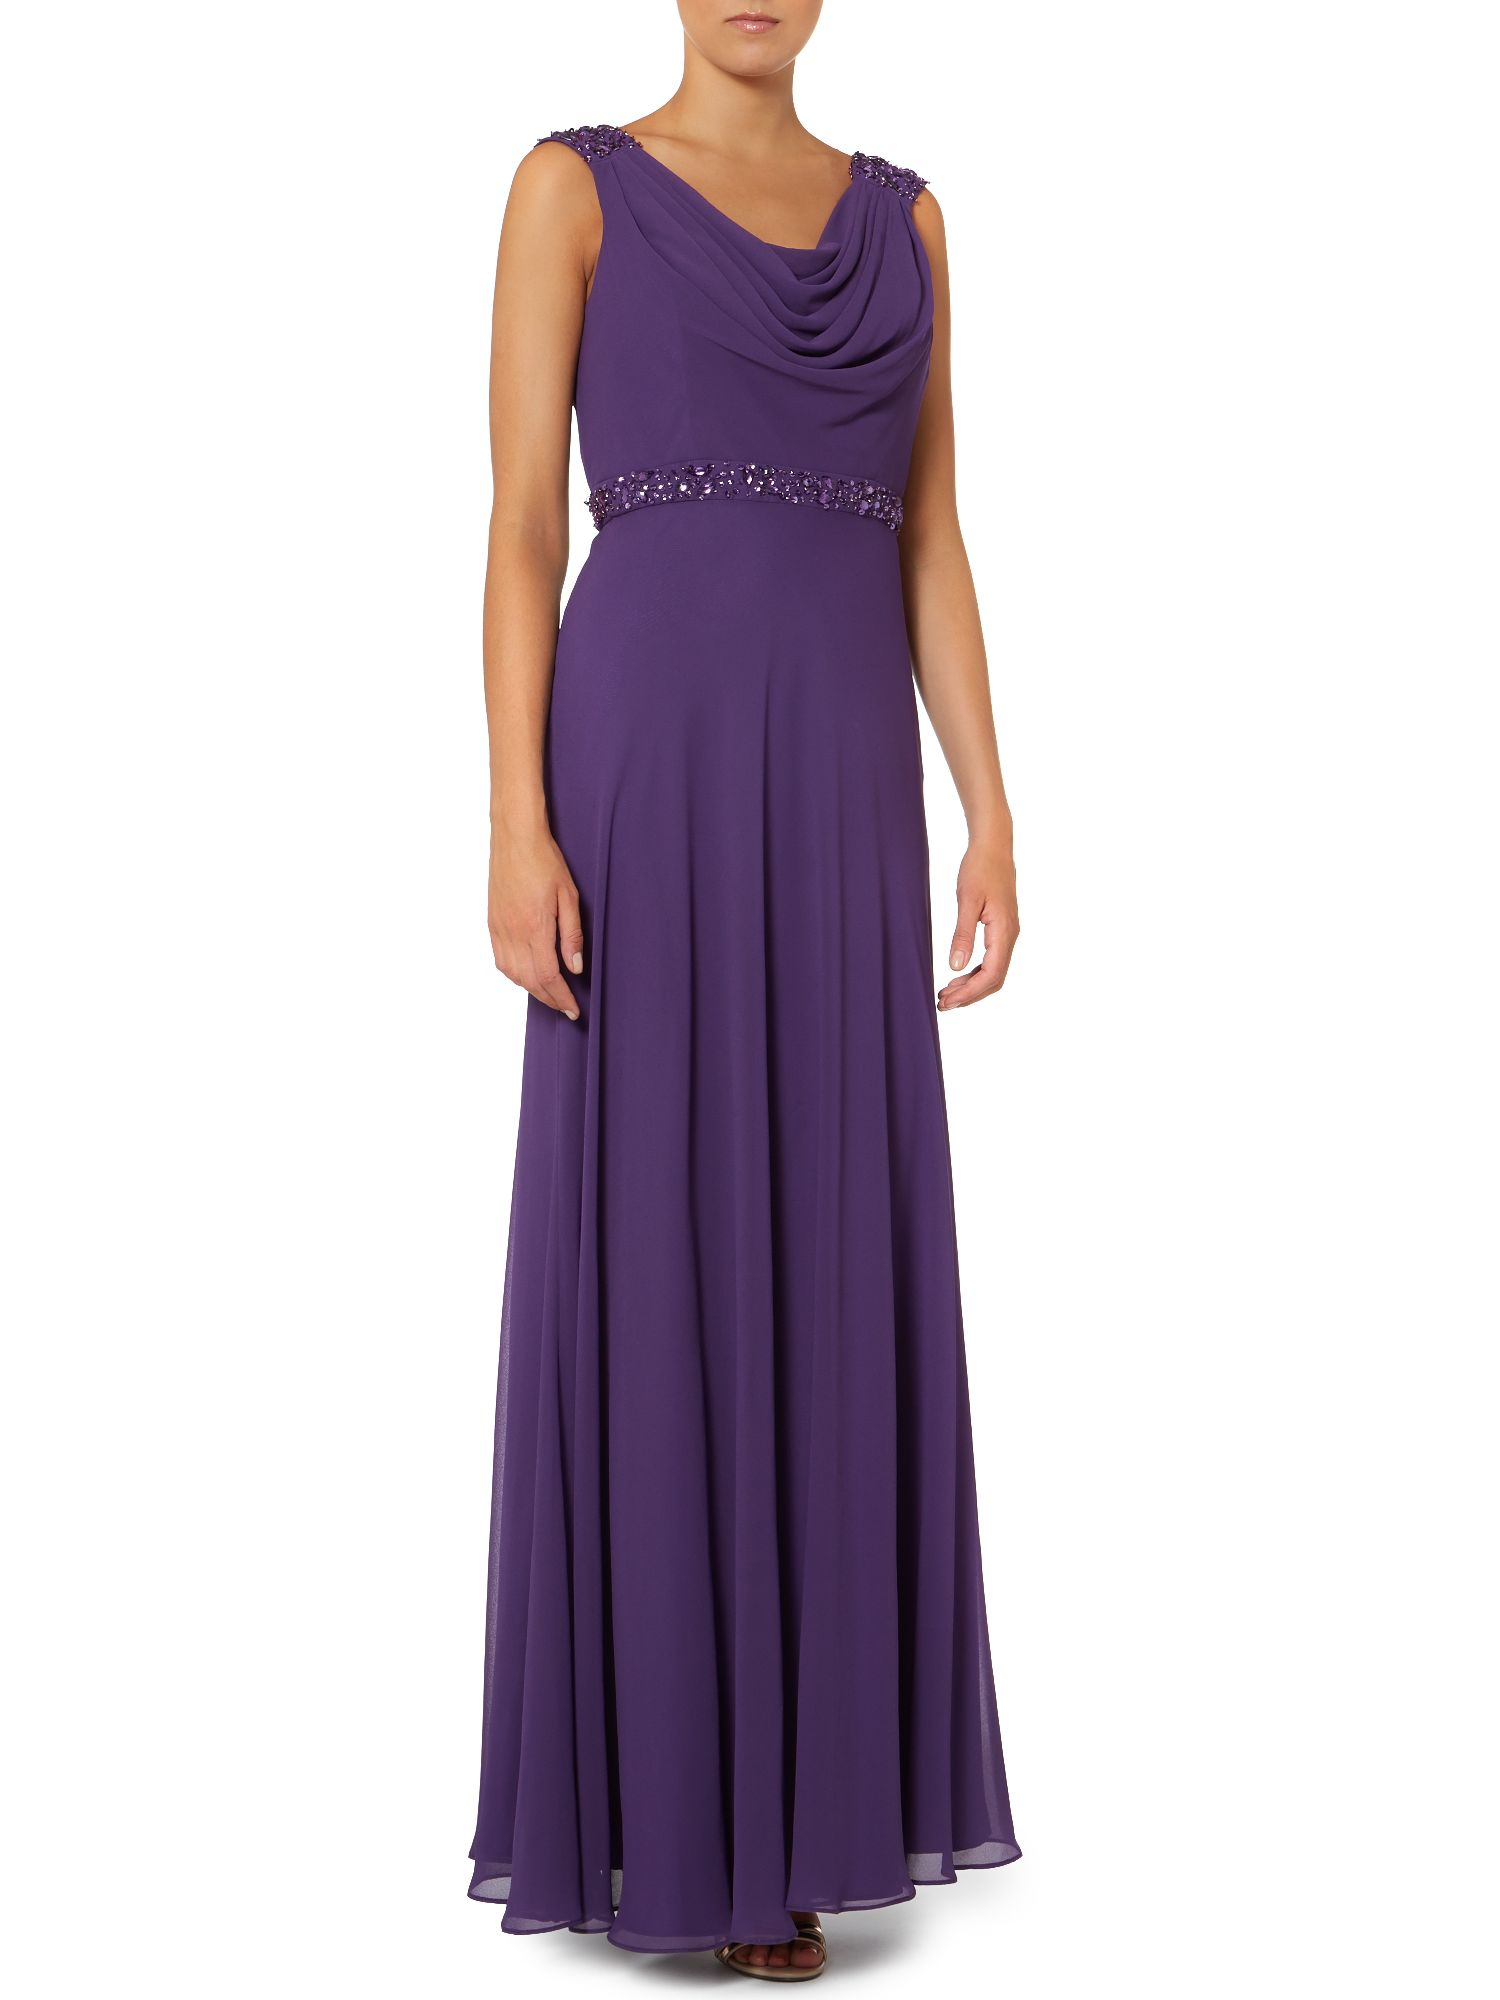 Chiffon maxi dress with cowl neck